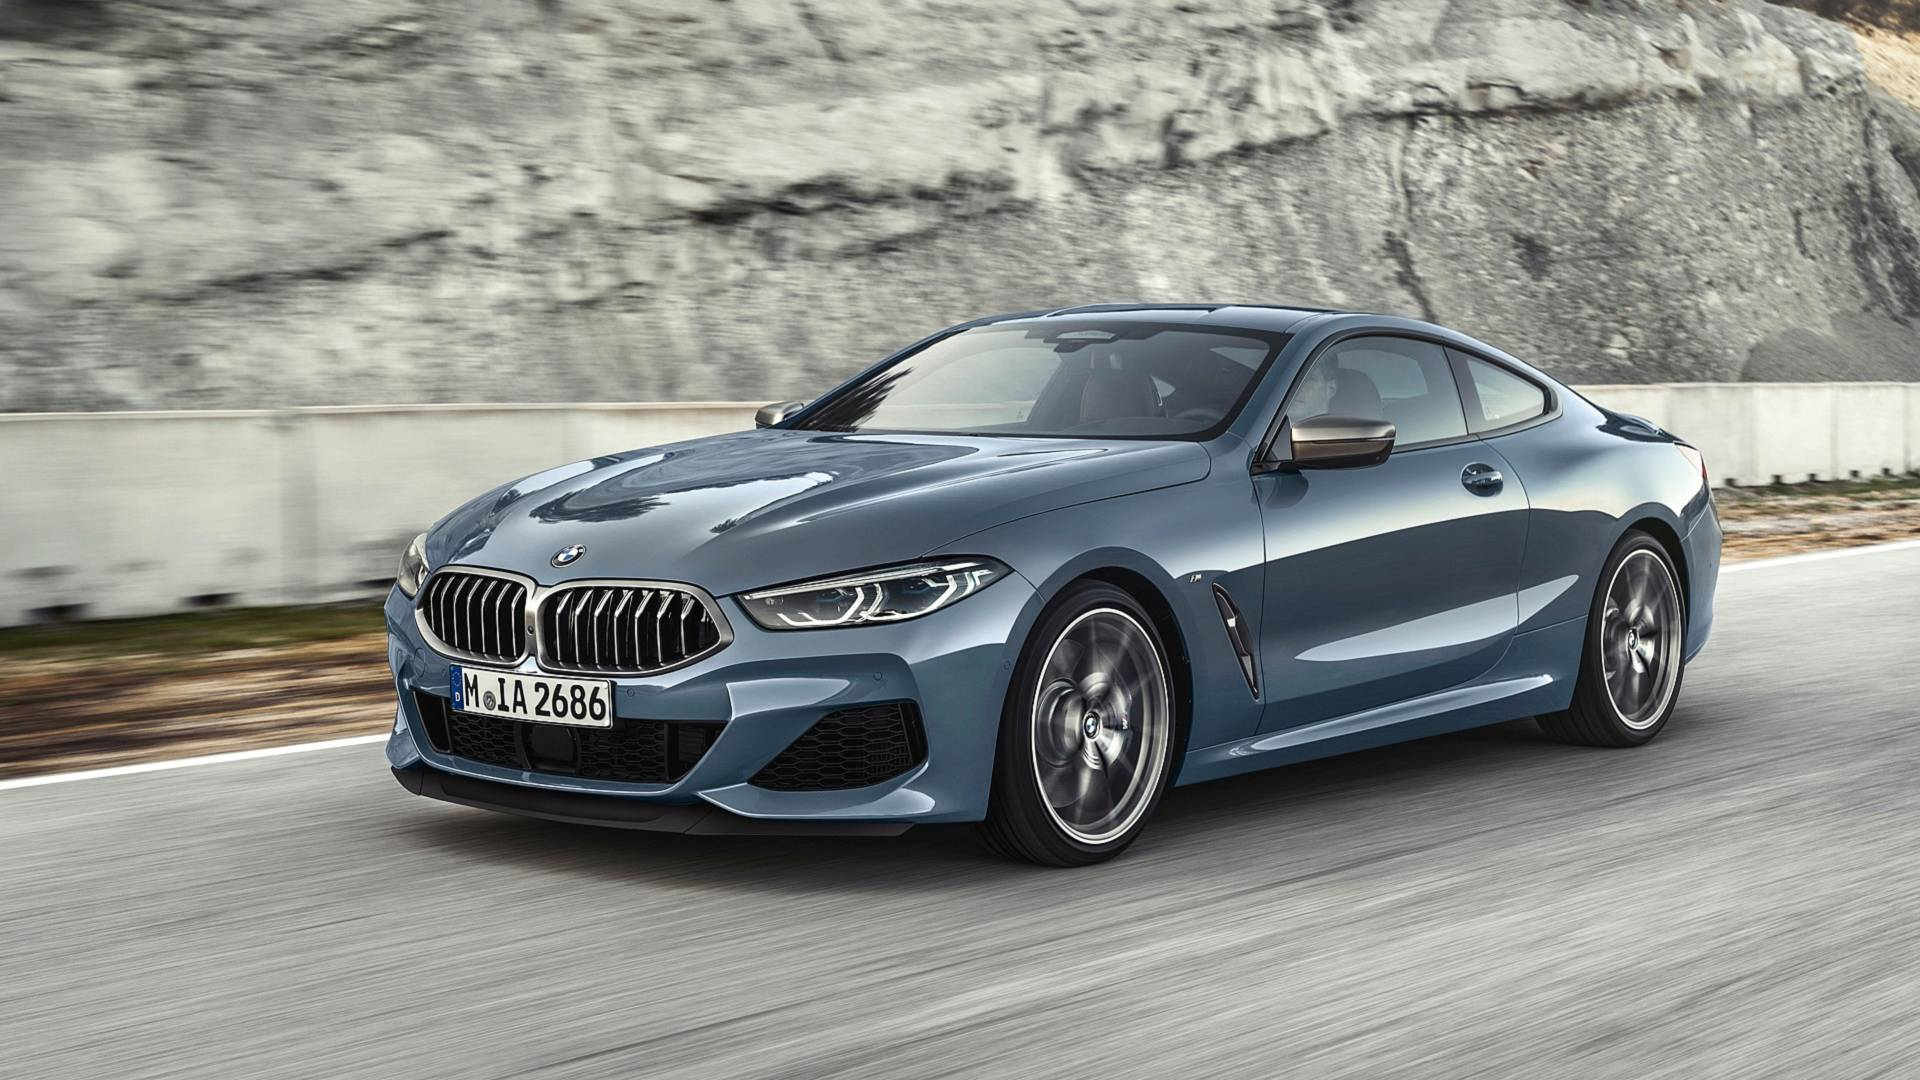 2019 BMW 8 Series Shooting Brake Rendered, Looks a Bit Like a Volvo - autoevolution